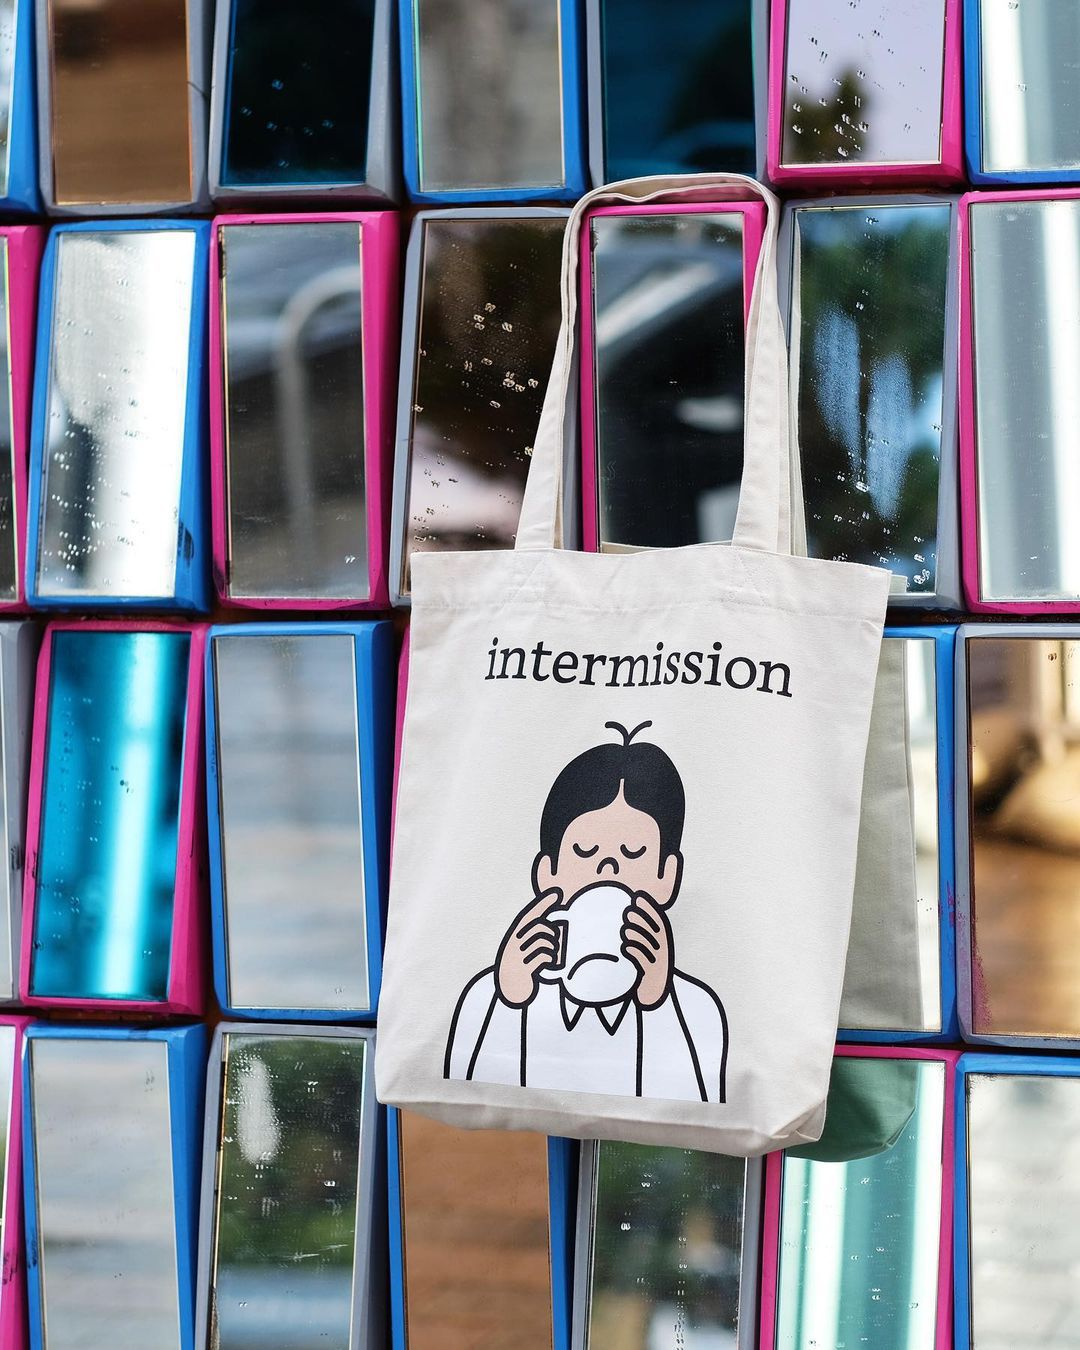 The best London restaurant merch to buy right now includes this tote bag with a cartoon man sipping coffee from Intermission